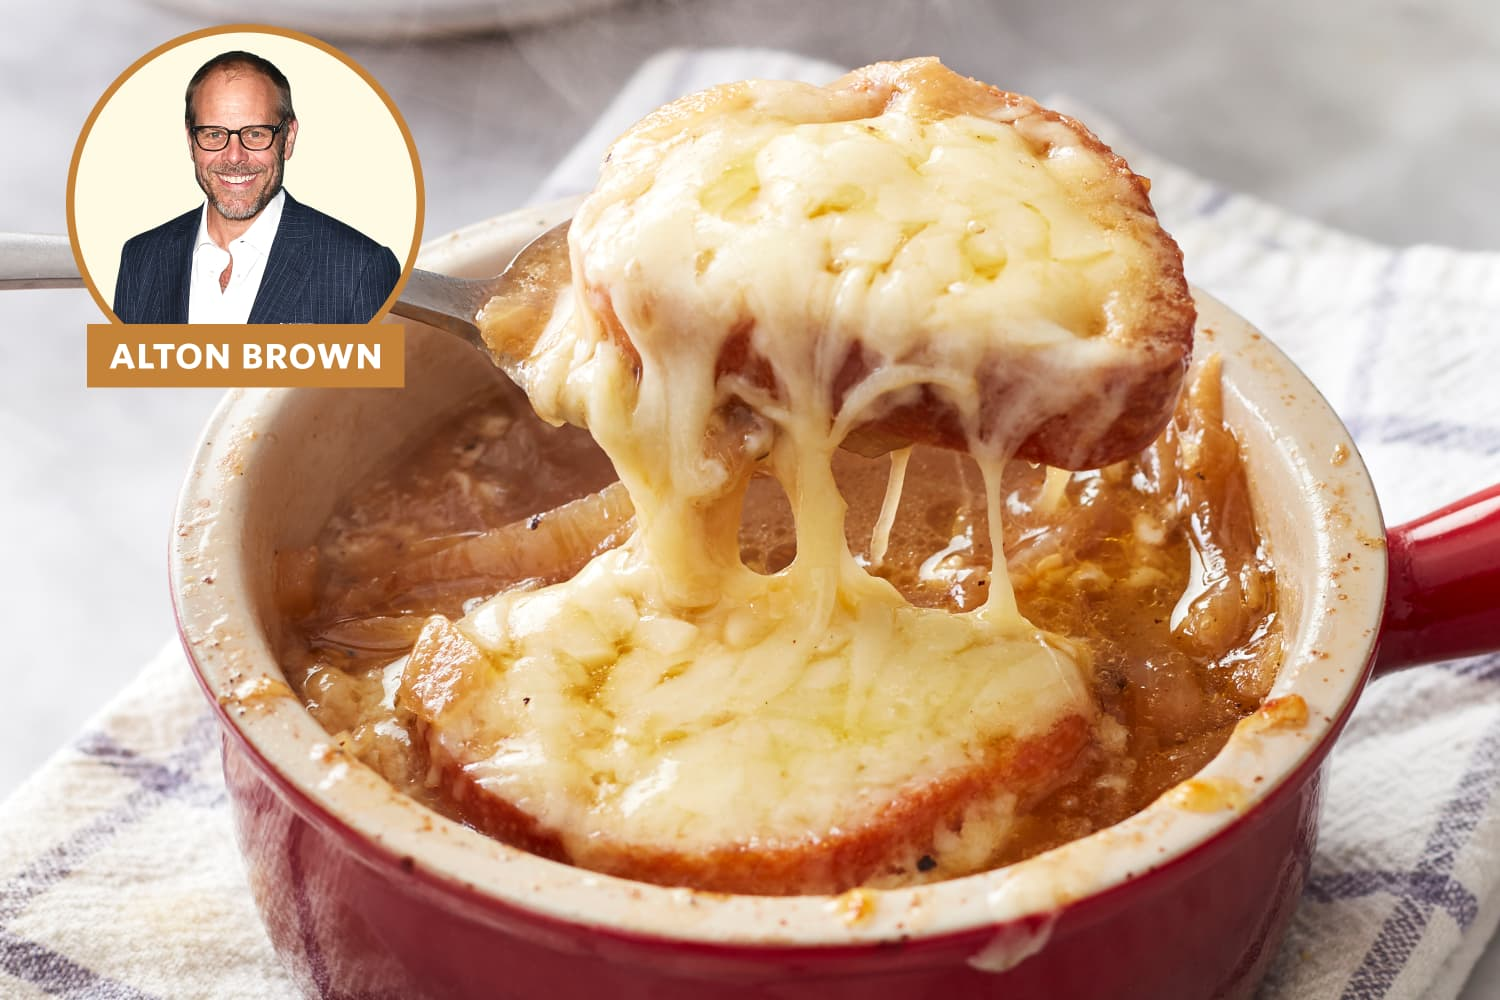 The Problem With Alton Brown's French Onion Soup Recipe